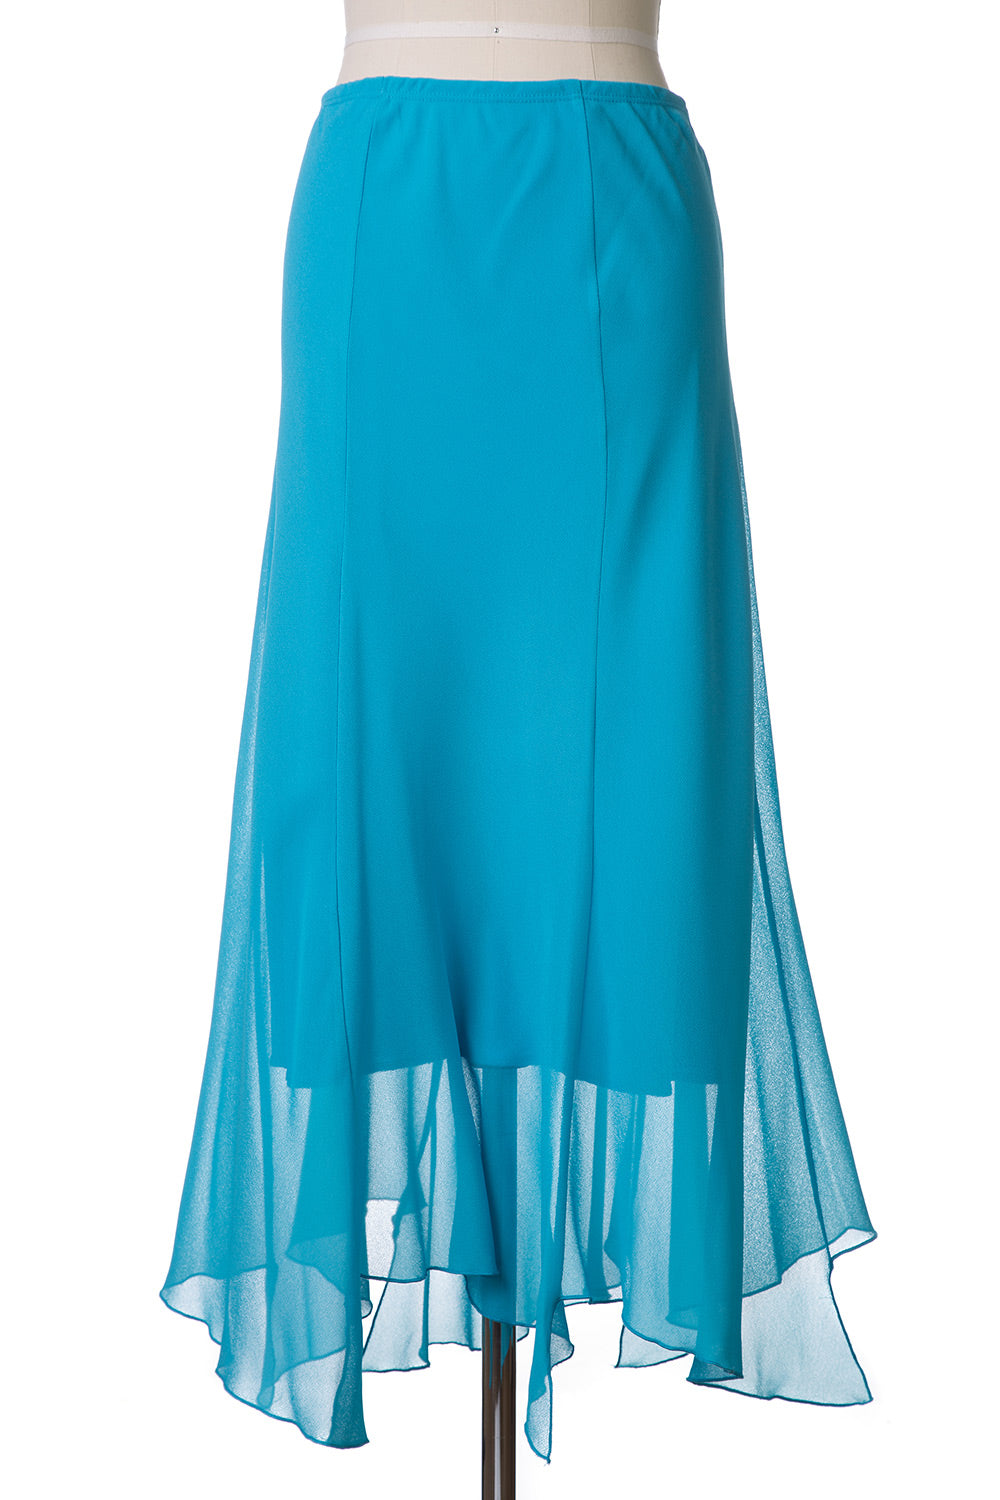 Type 2 The Short and Long of It Skirt in Turquoise